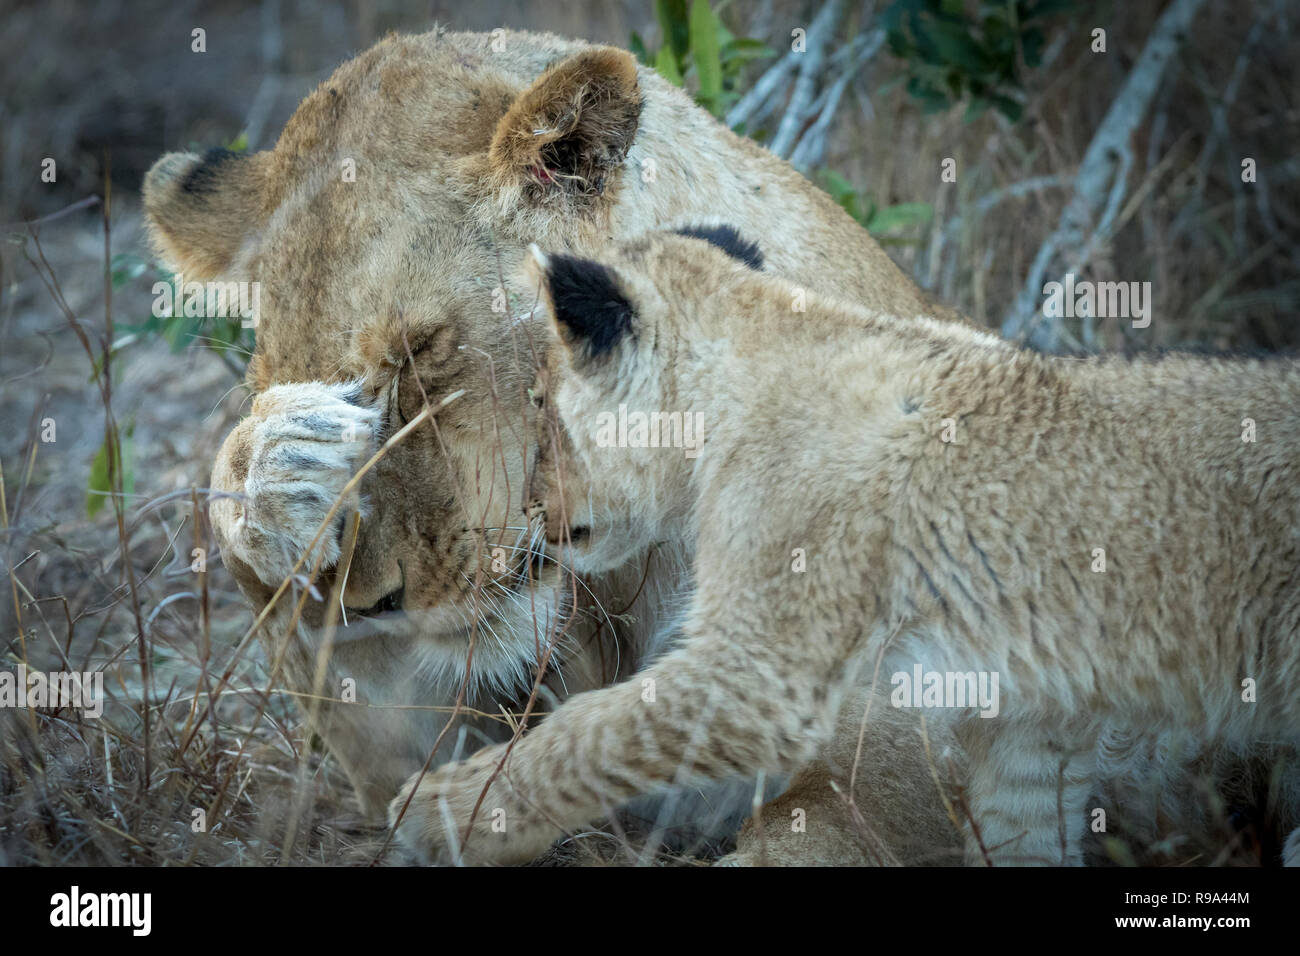 Adult lioness and tiny cub interaction. - Stock Image